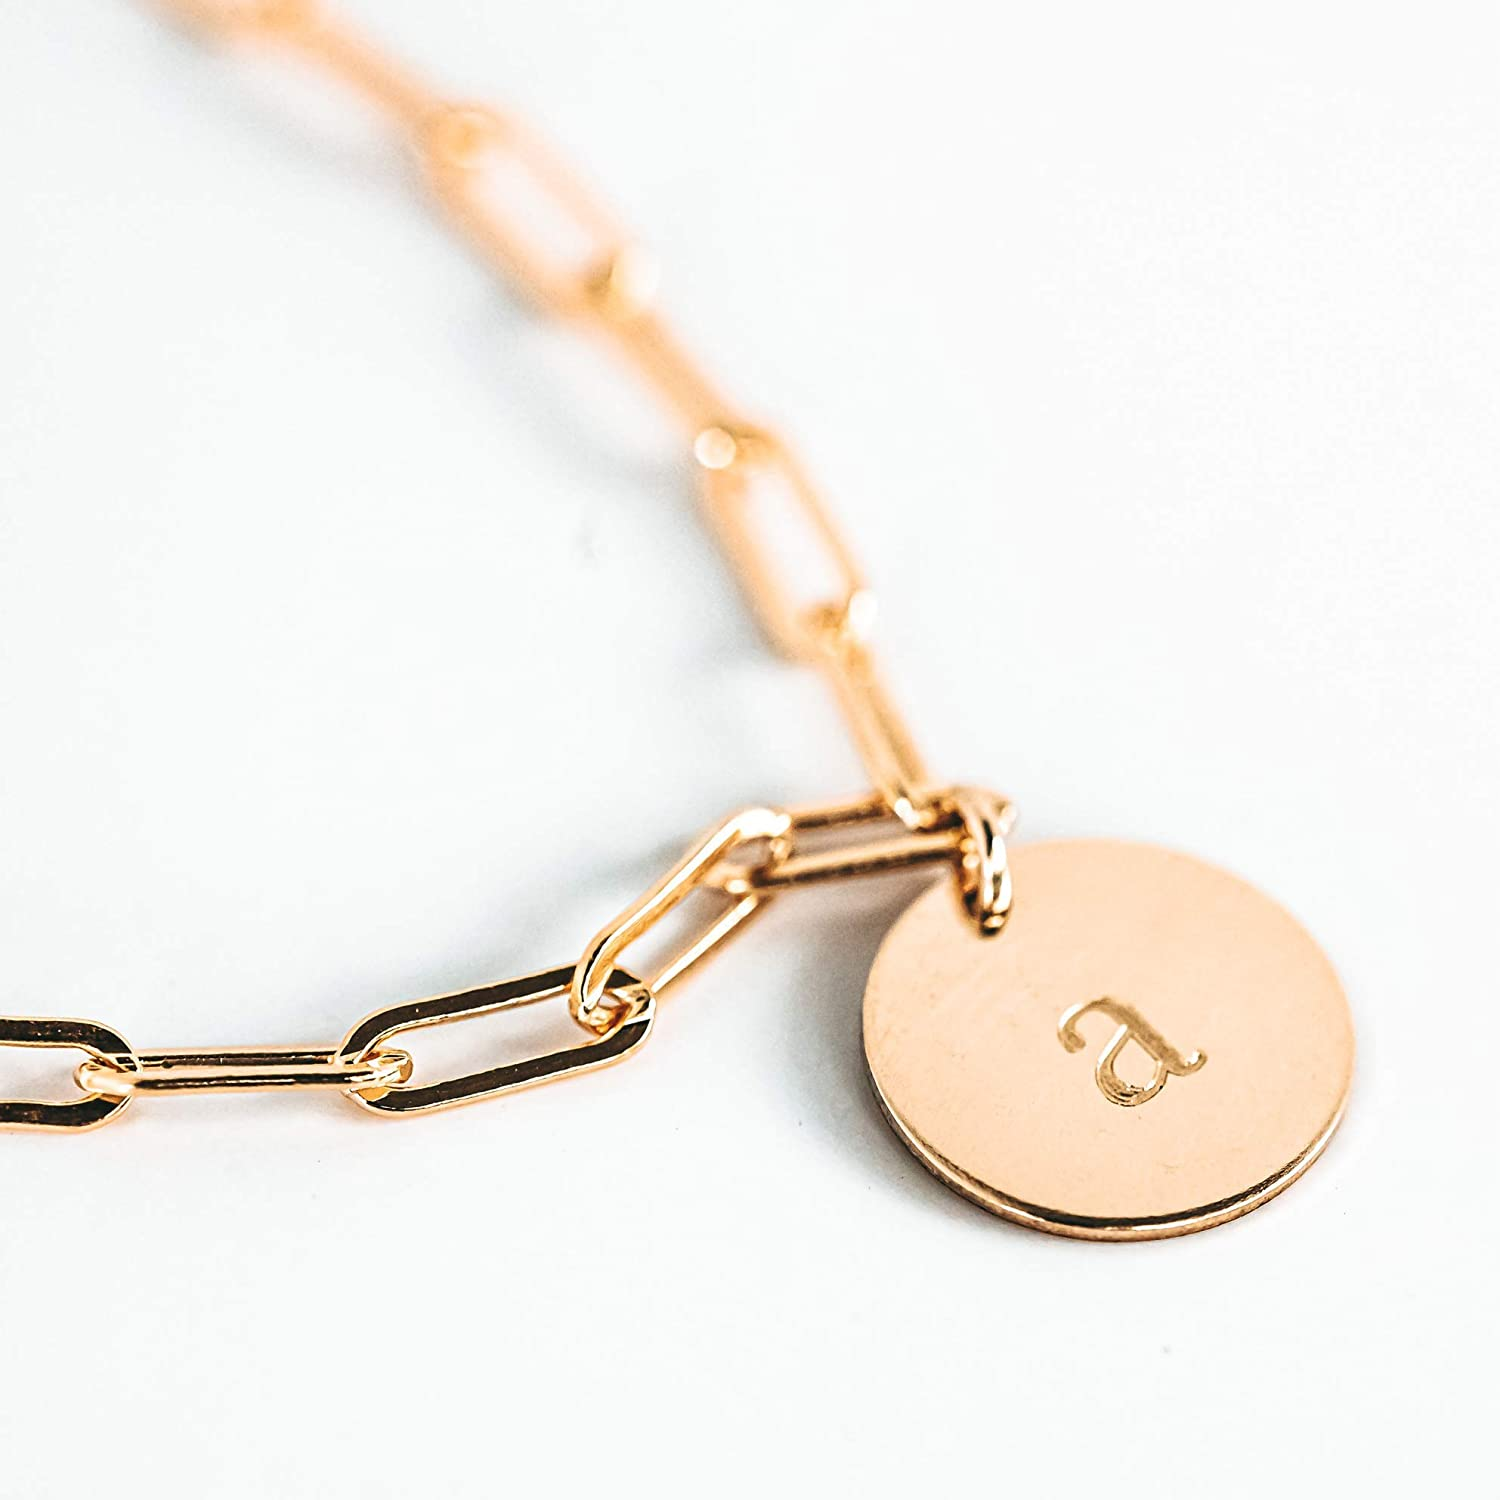 Paperclip Bracelet with Charm Adjustable Initial Bracelets for Women 925 Sterling Silver or 14k Gold Filled Paper Clip Chain Gift for Mom Wife